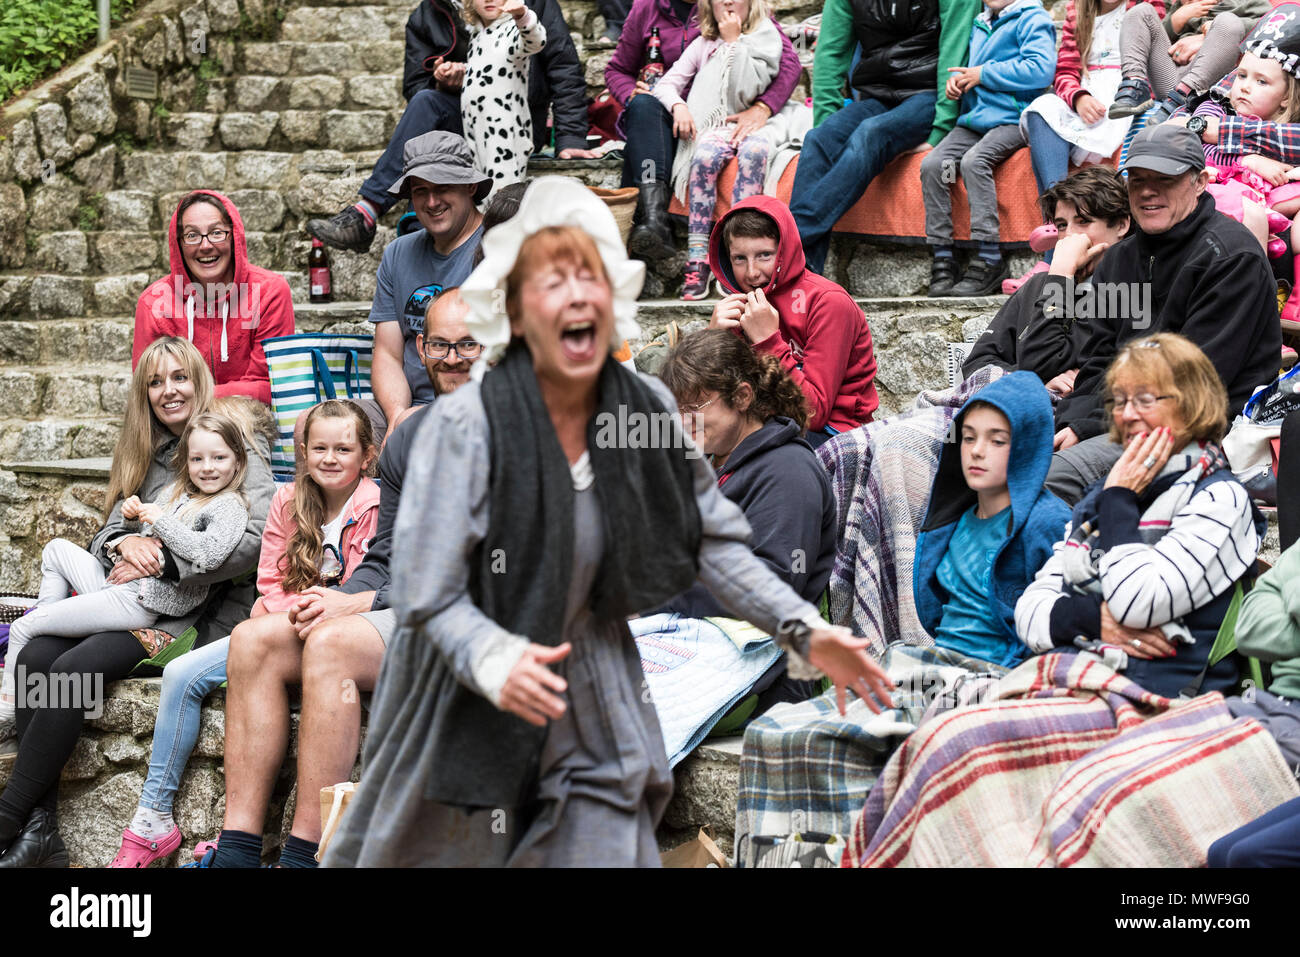 Acting - Gweek Players in a performance of Pirates of Trebah at Trebah Garden Amphitheatre in Cornwall. - Stock Image